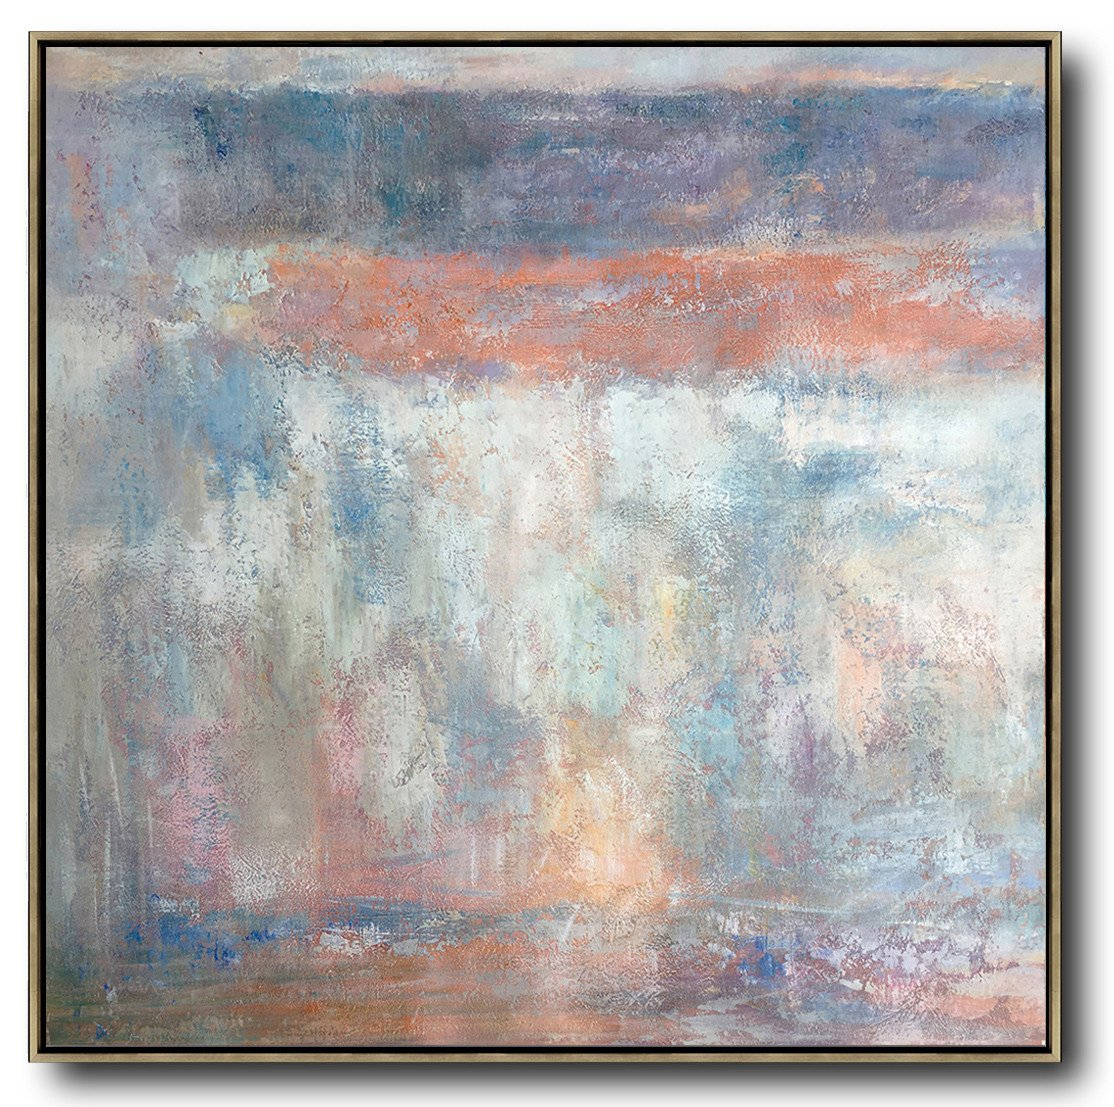 Large Abstract Painting On Canvas,Oversized Contemporary Art,Abstract Painting For Home,Orange,Grey,White,Blue.etc